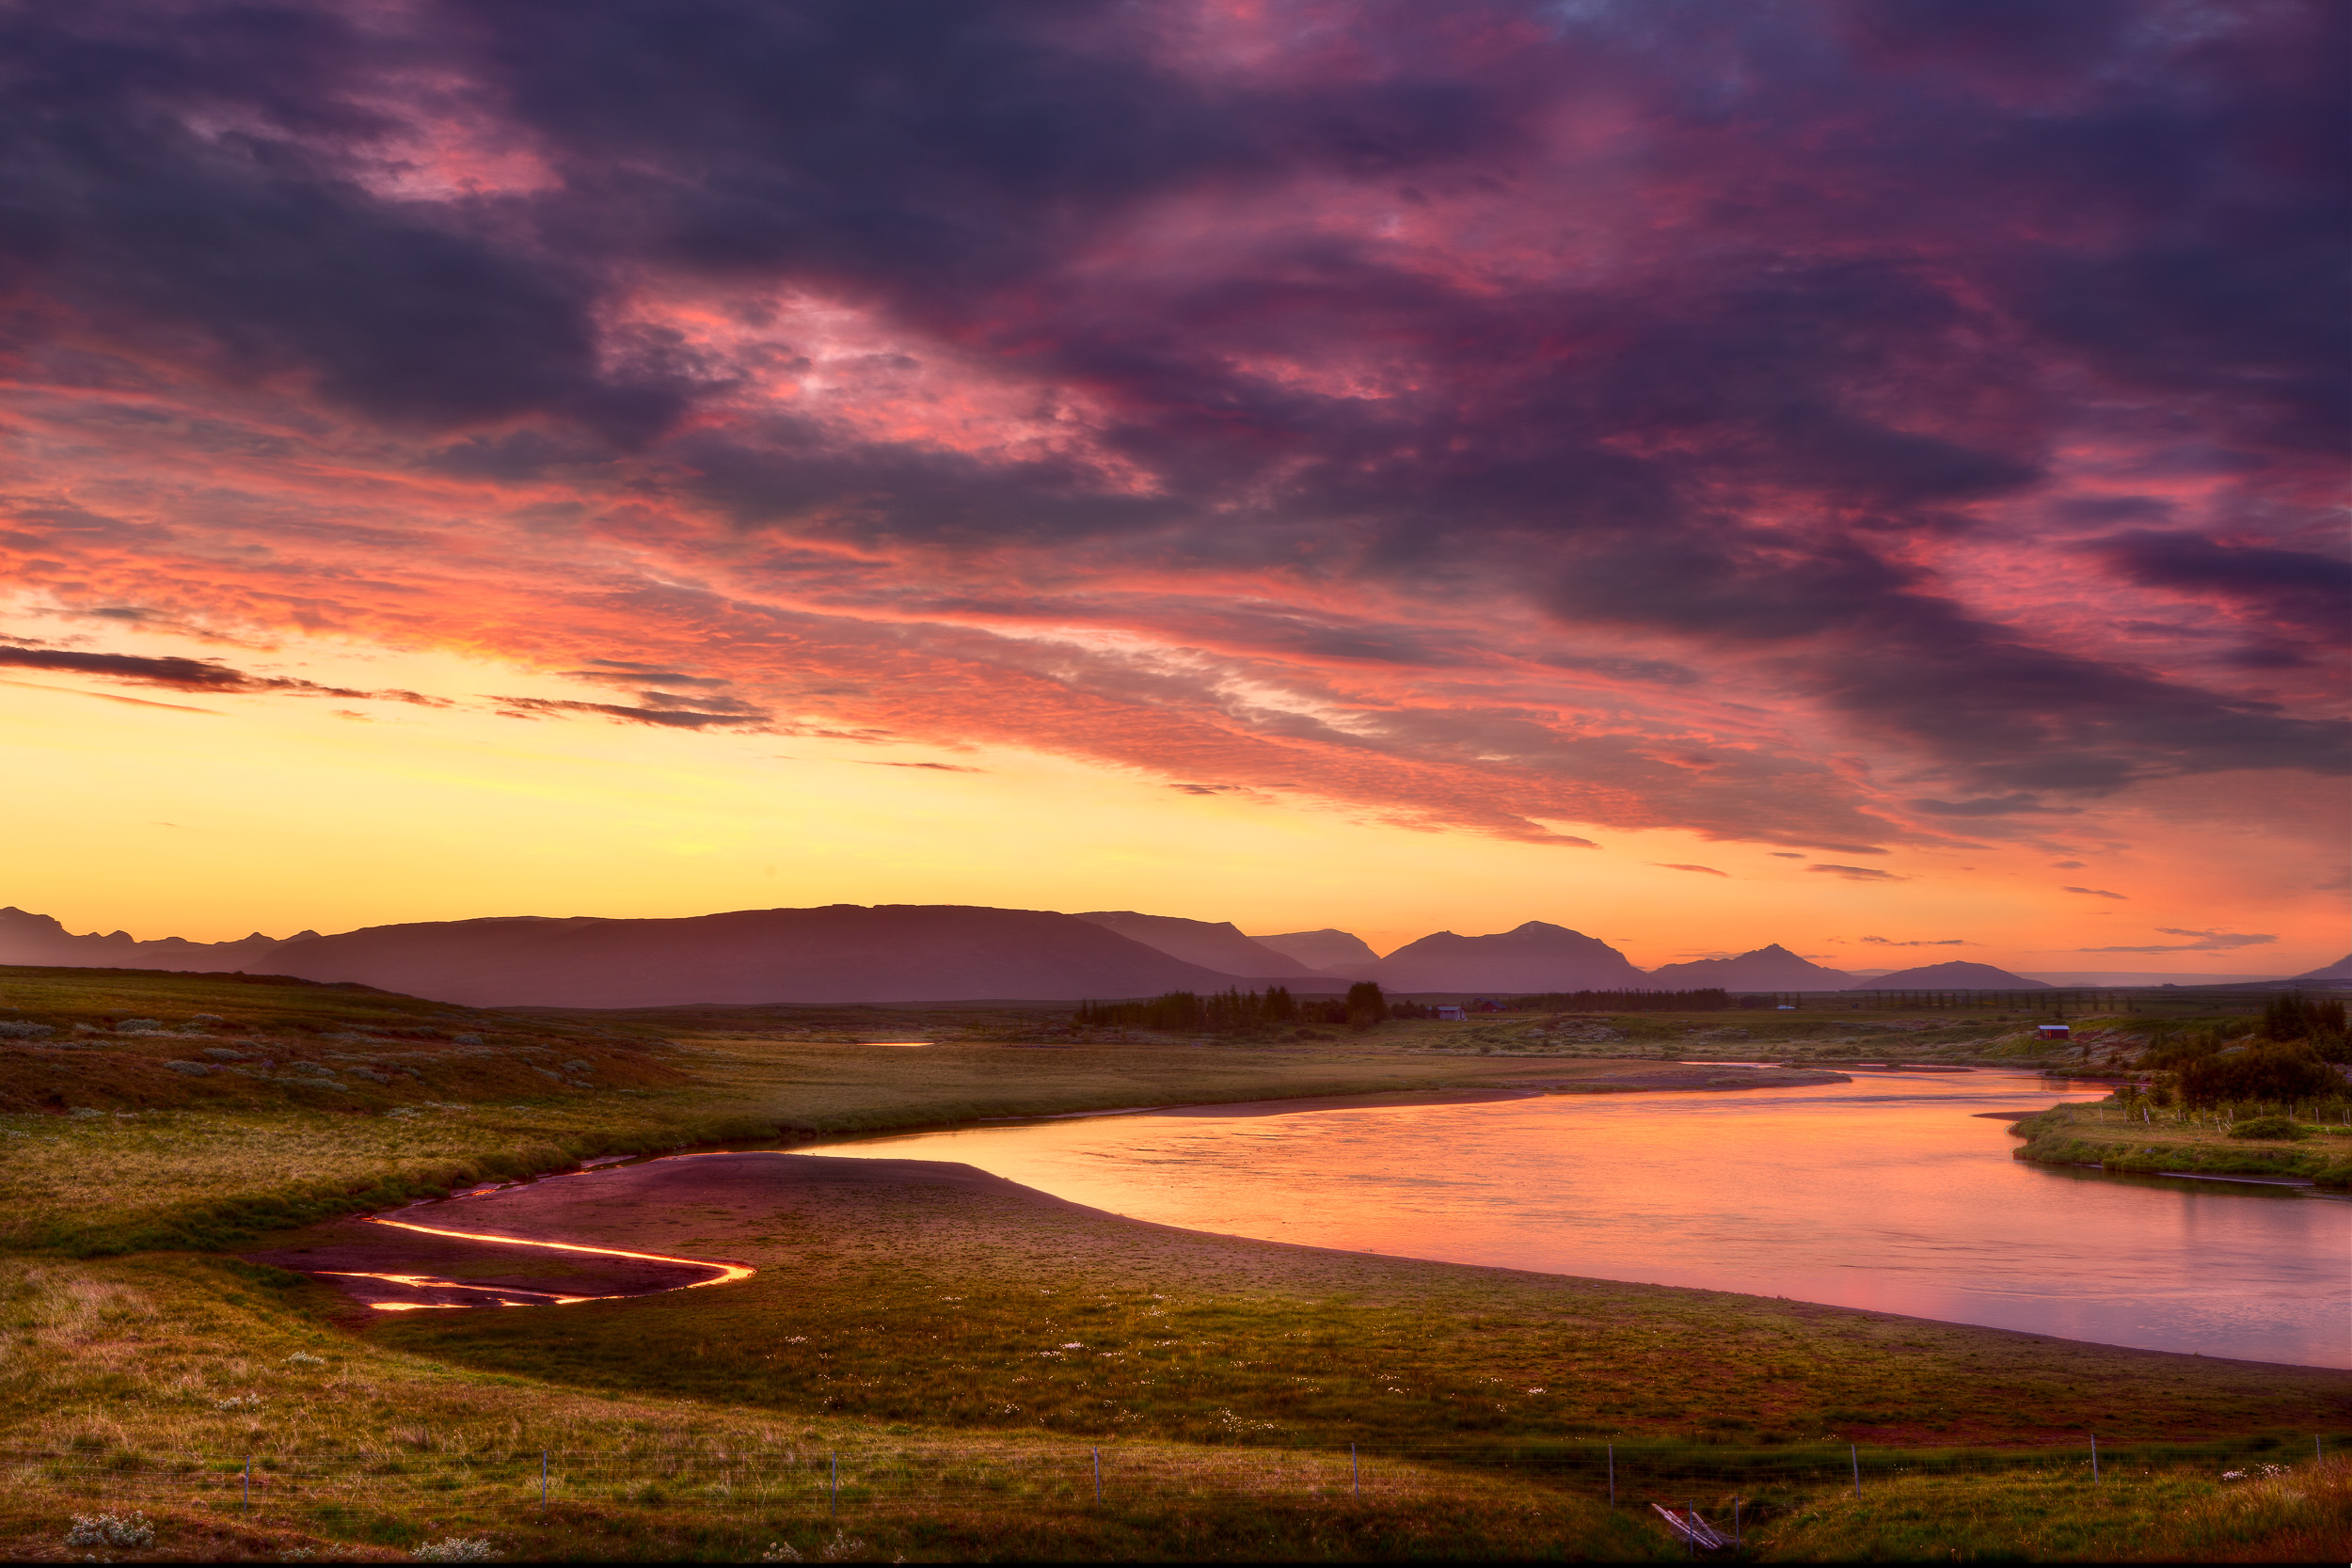 Sunset and a stormy sky  reflect light onto a  creek and farmland  in rural  Iceland .